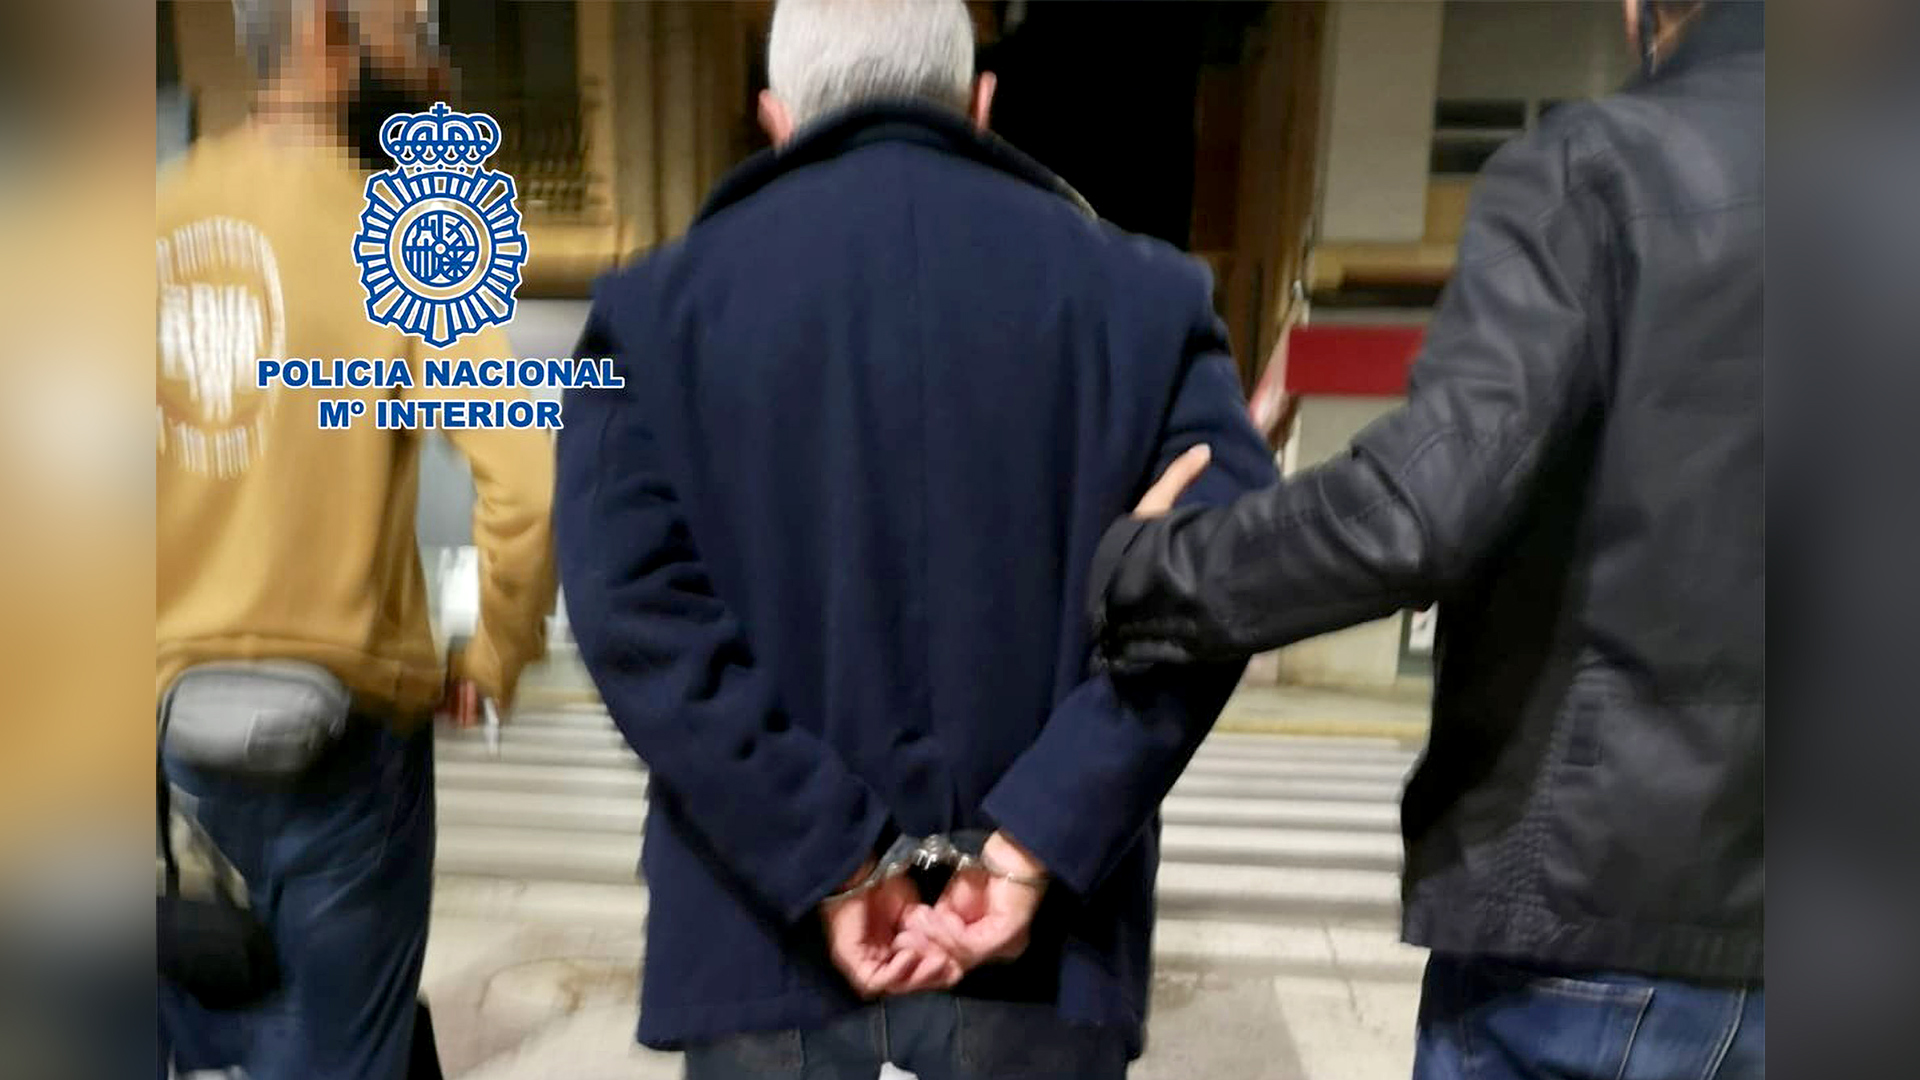 Uruguayan Ex-Military Colonel detained in Spain for alleged role in genocide